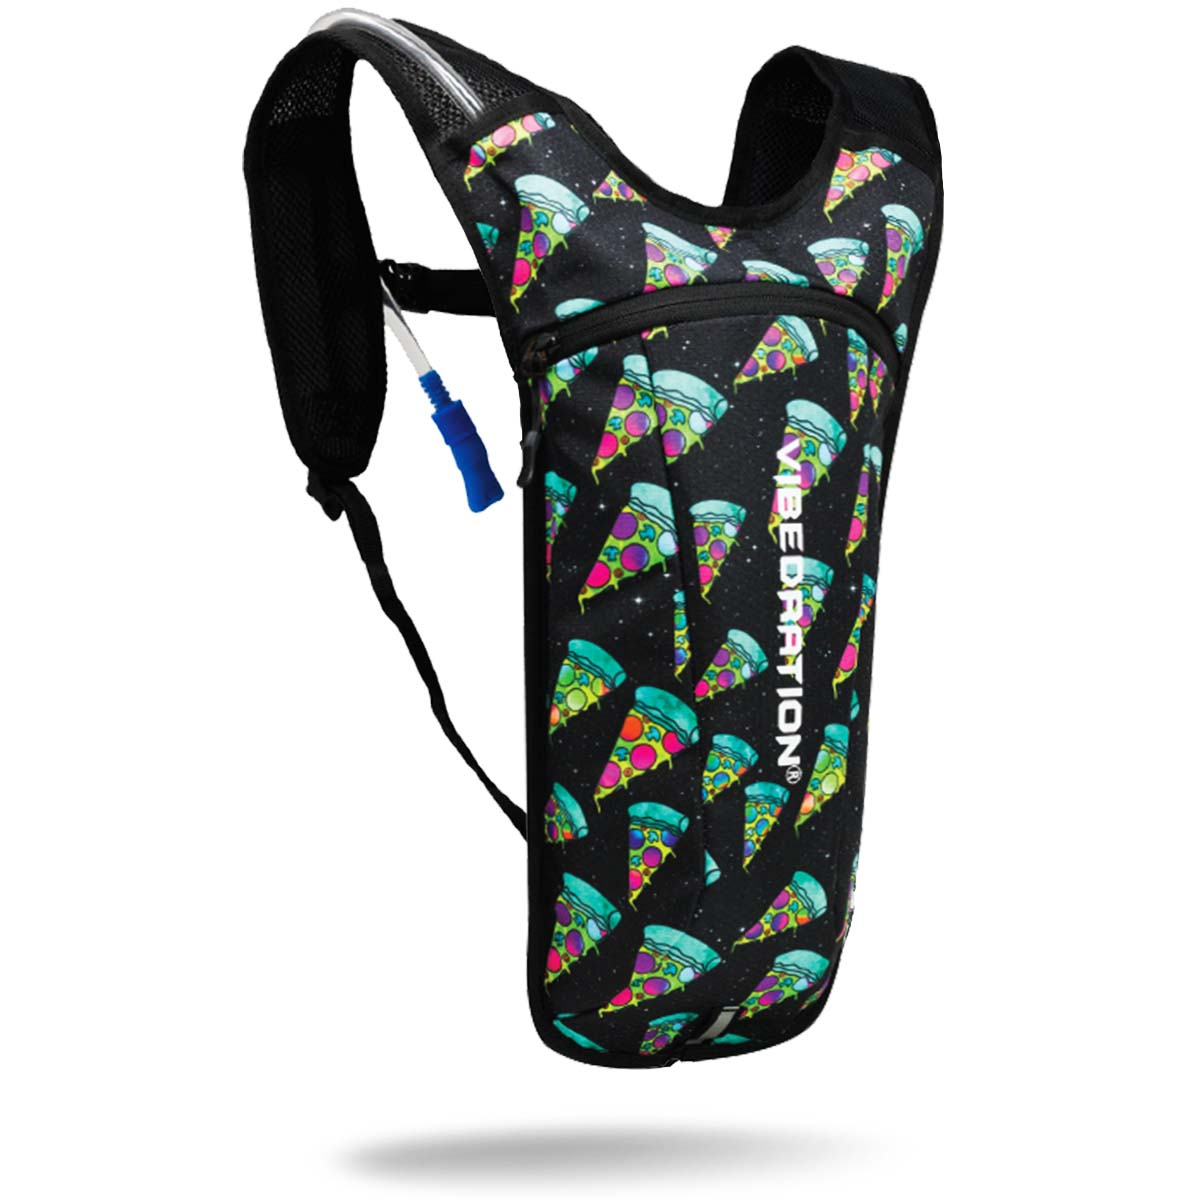 Black Pizza Hydration Pack with 2 Liter water reservoir